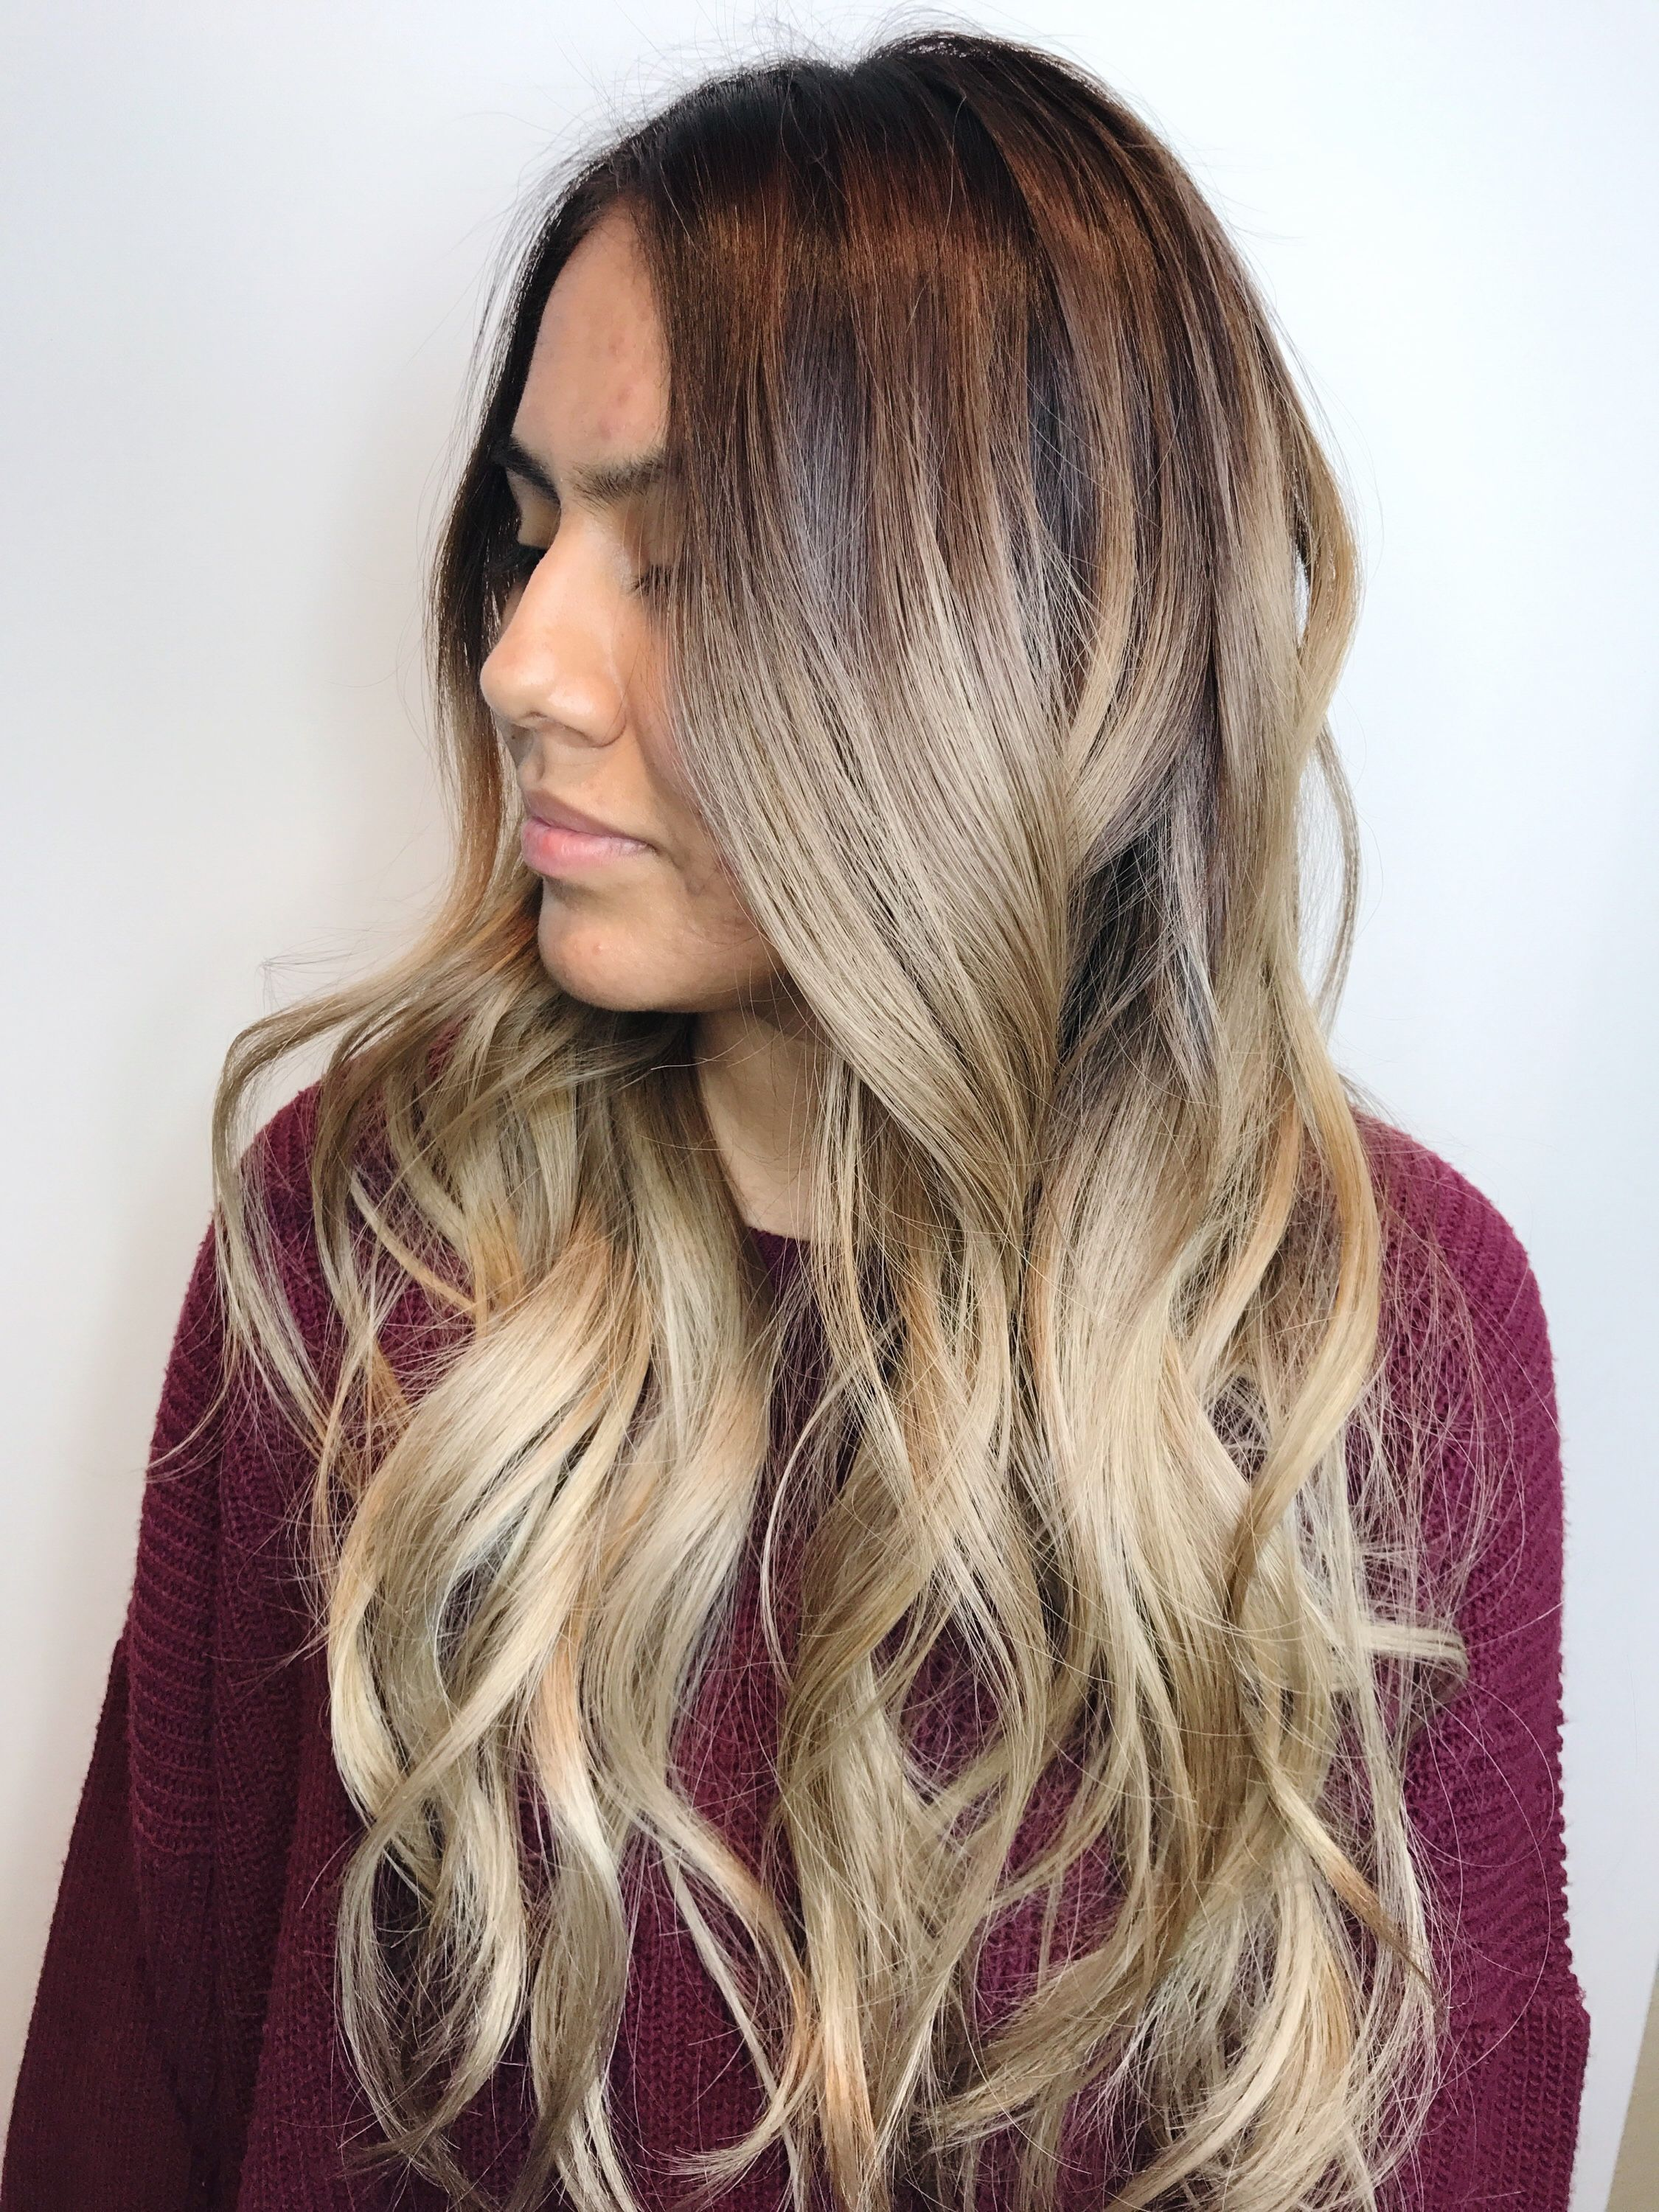 19+ Great clips womens haircut trends